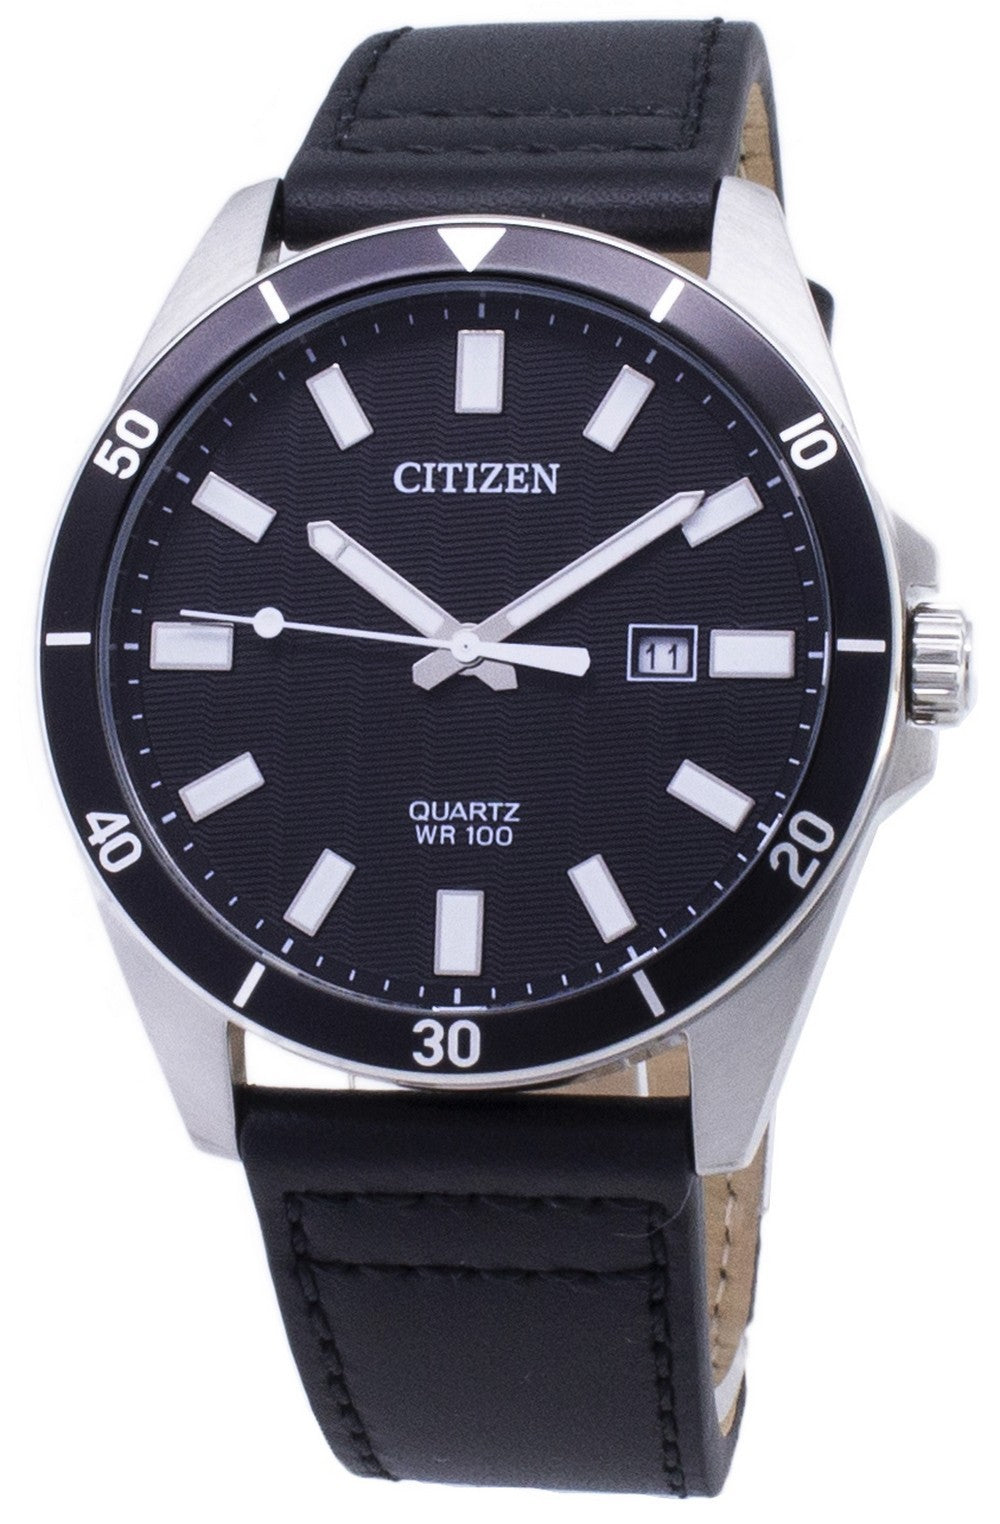 Citizen Quartz Bi5050-03e Analog Men's Watch